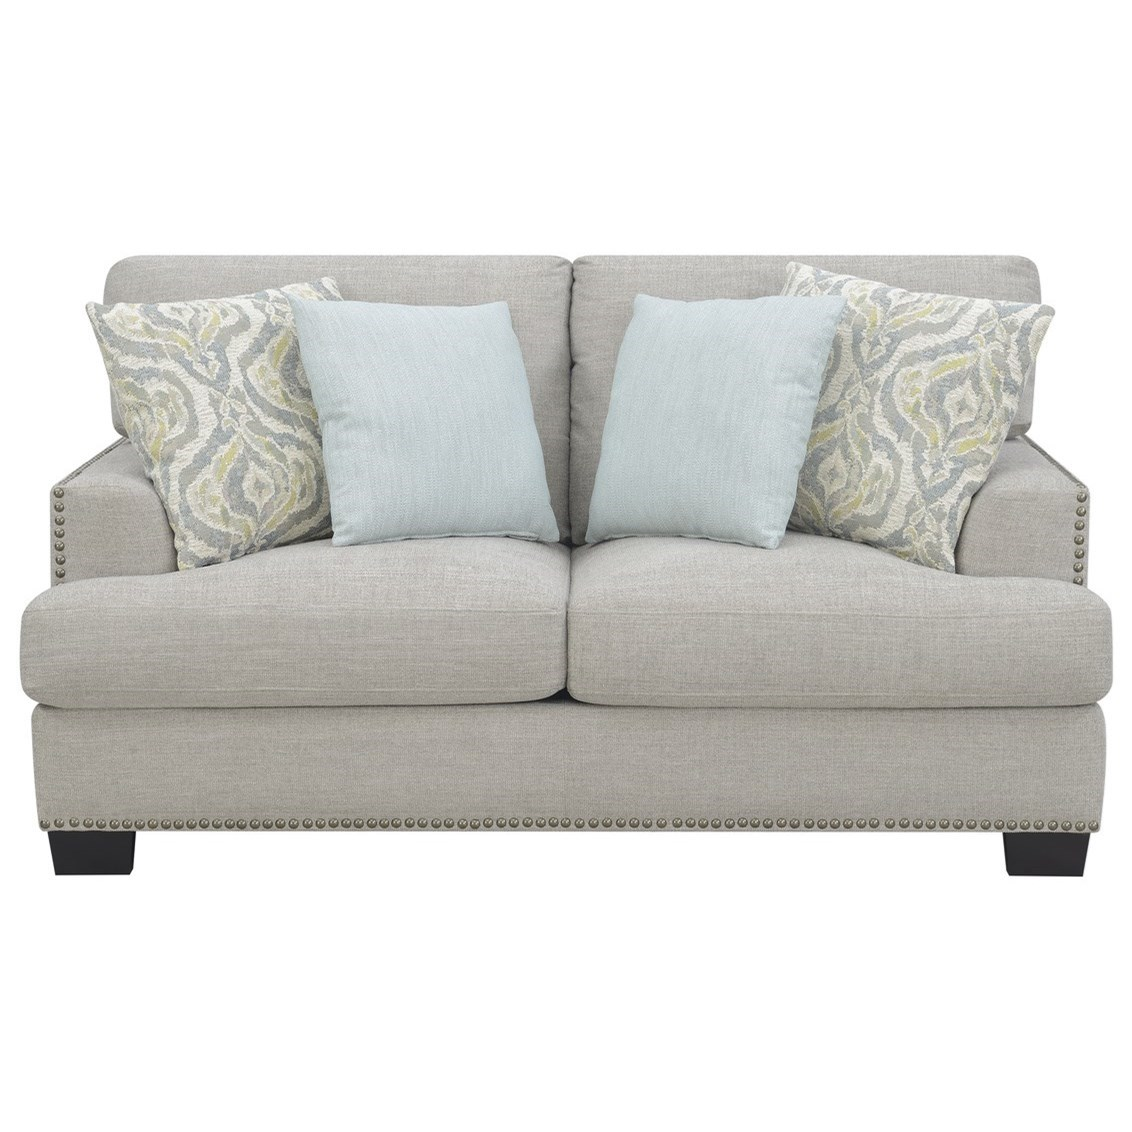 Kinsley Loveseat by Emerald at Suburban Furniture